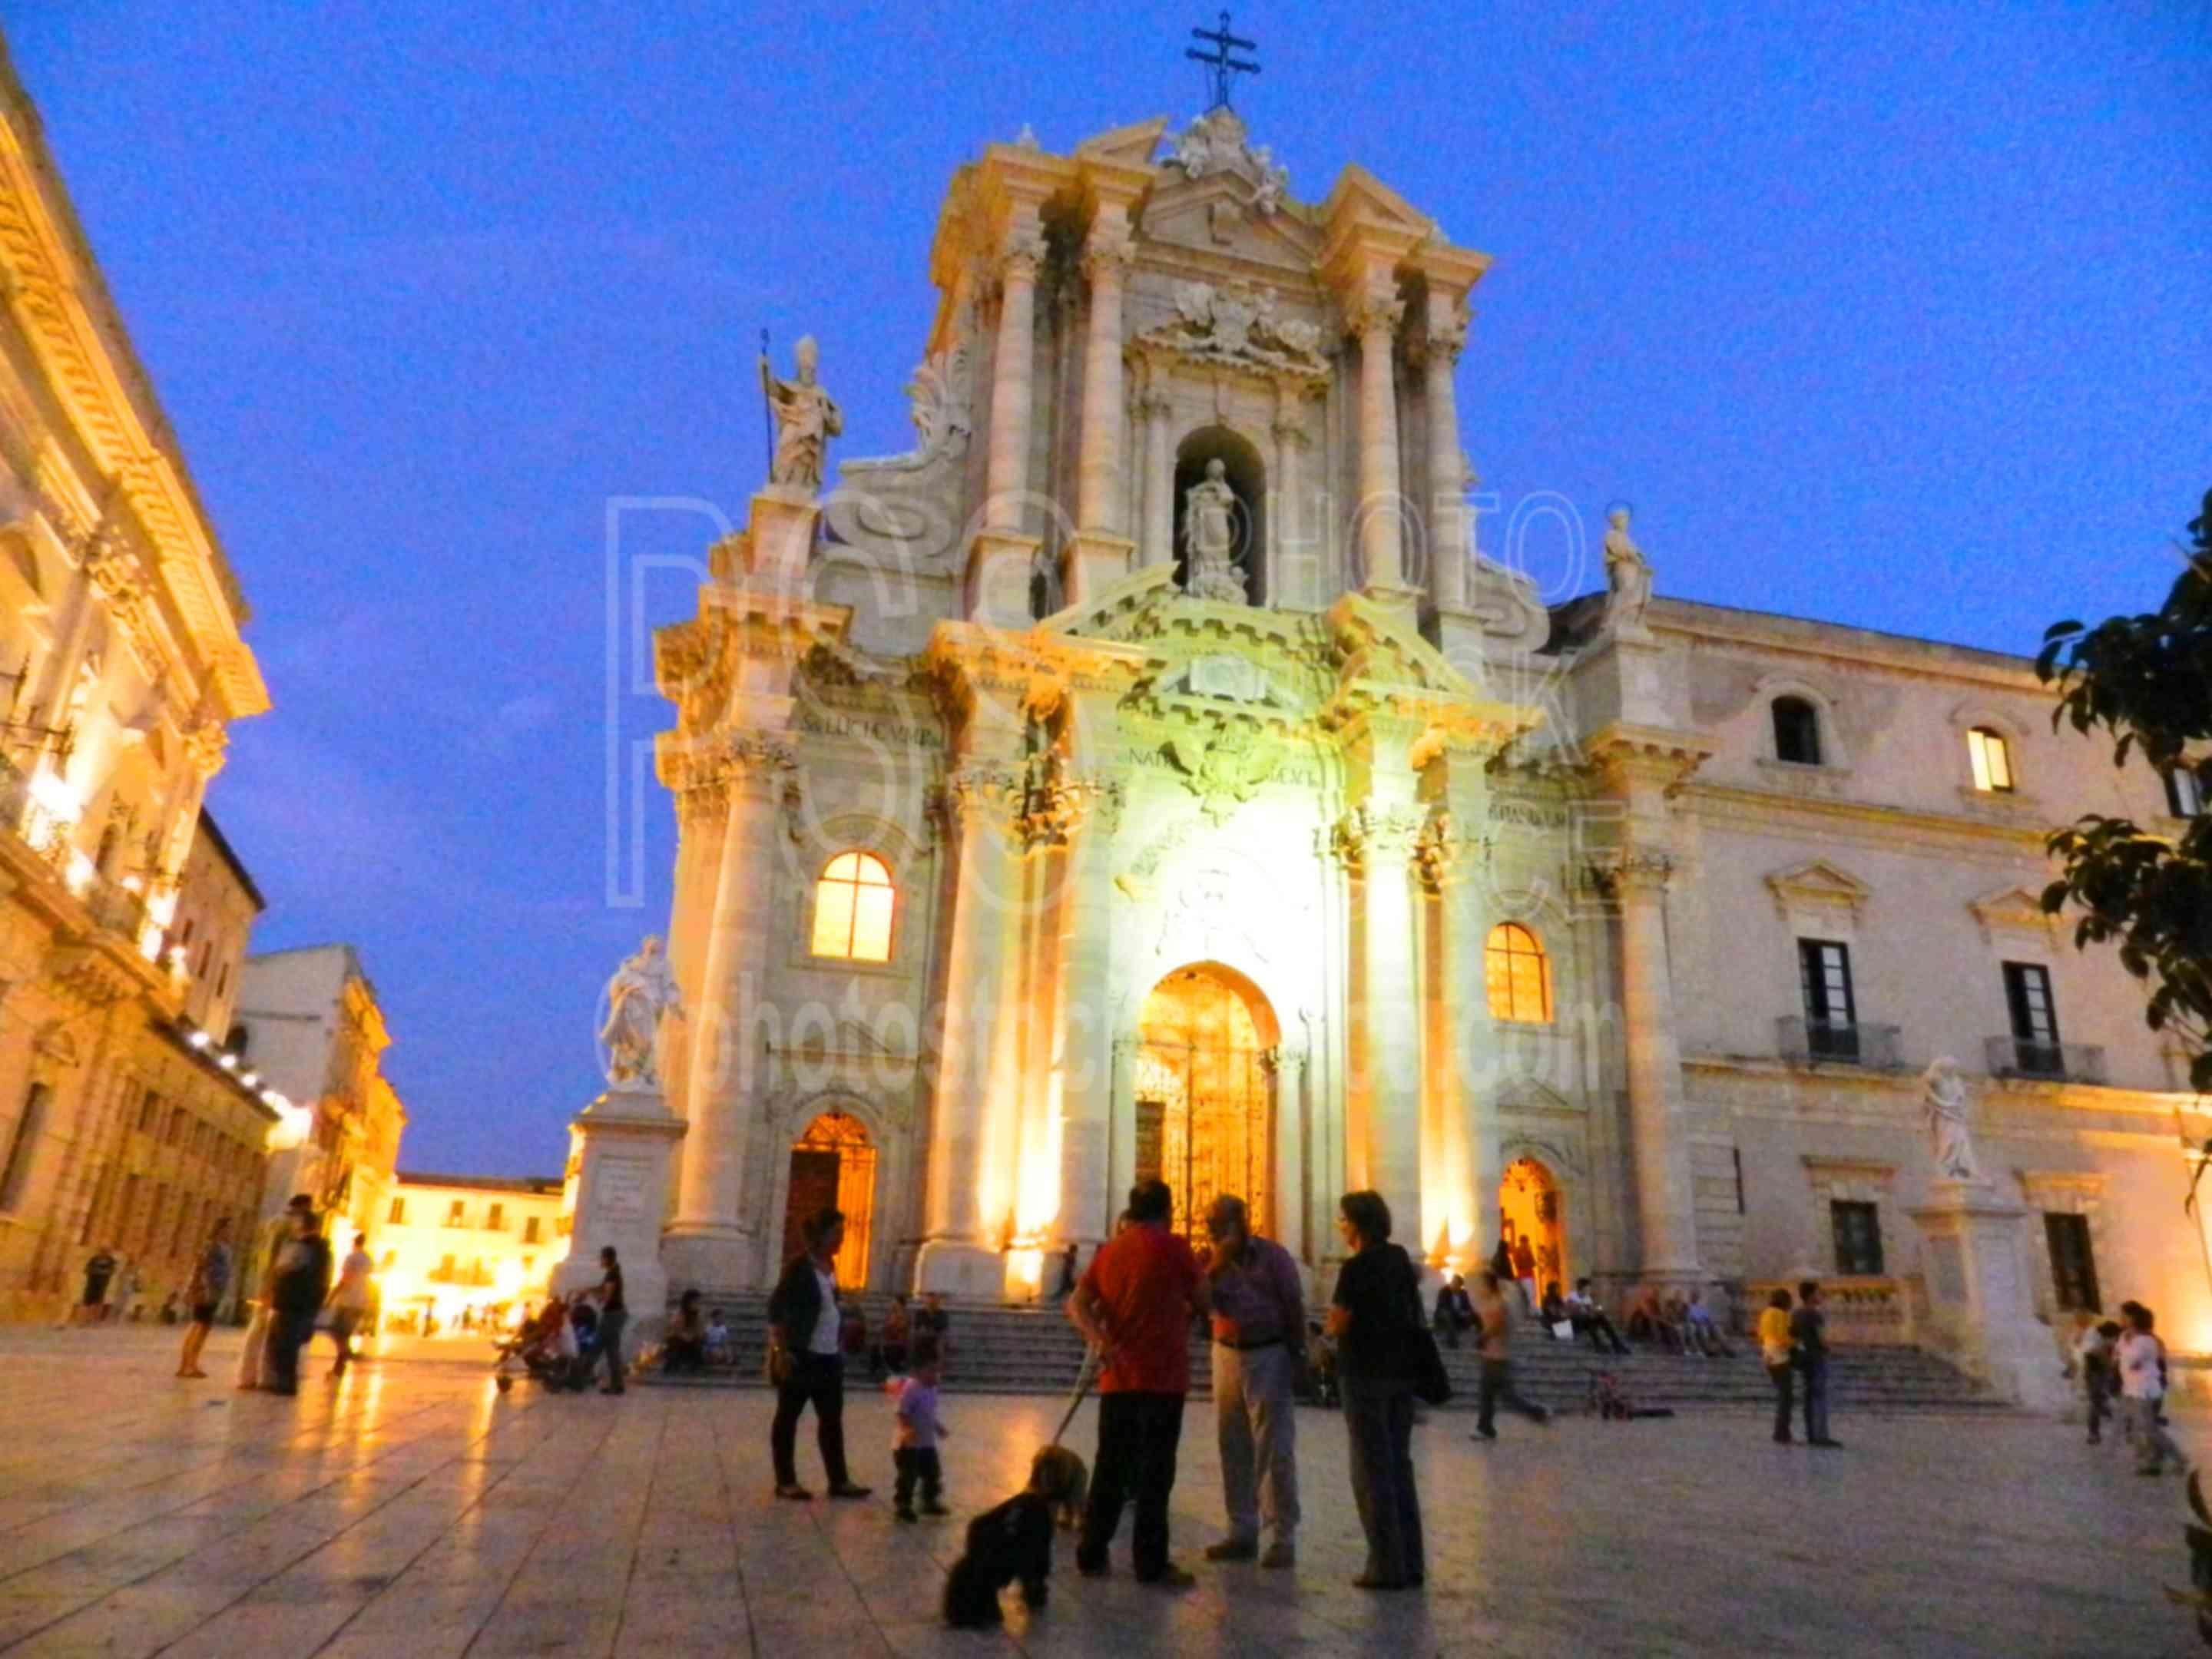 Duomo di Siracusa at Night,siracusa,ortigia,ortygia,night,lights,duomo,cathedral,people